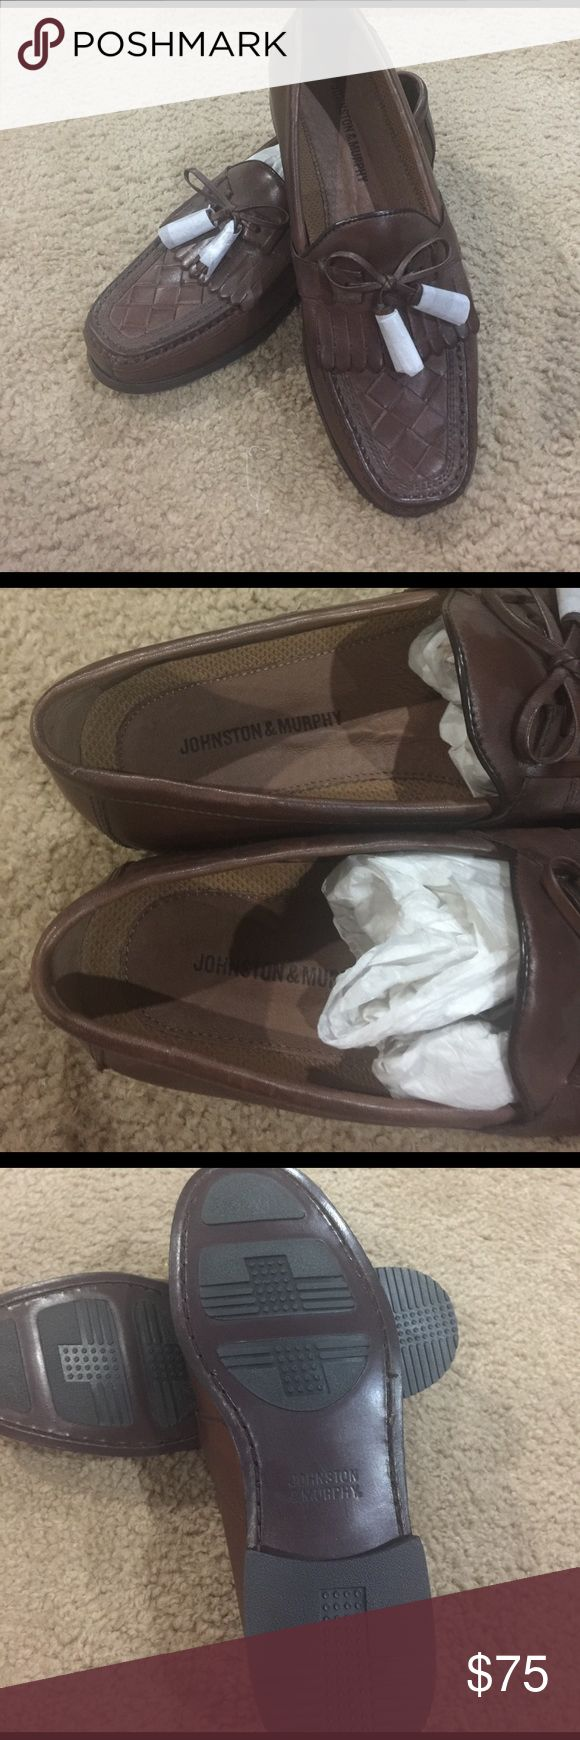 FLASH SALE PRICE 🚨 Johnston and Murphy Loafers Gorgeous, brand new, never worn Johnston and Murphy loafers. Johnston & Murphy Shoes Loafers & Slip-Ons